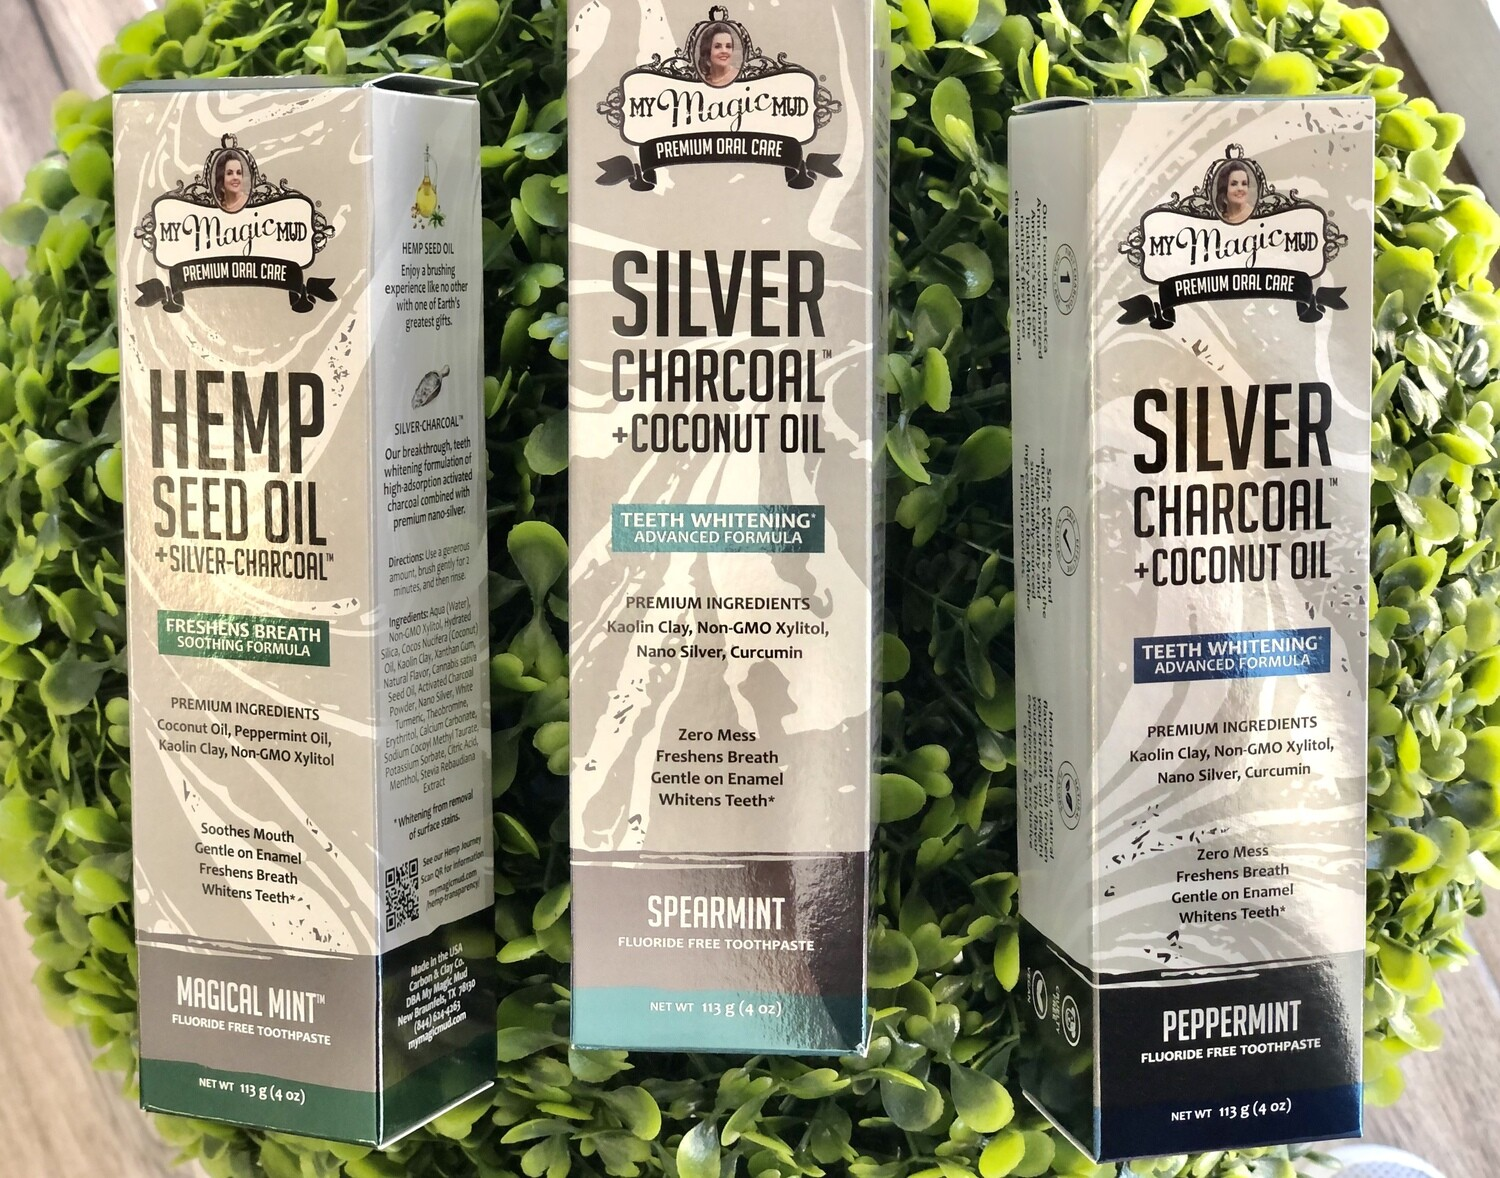 Magic Mud Silver Charcoal Toothpaste